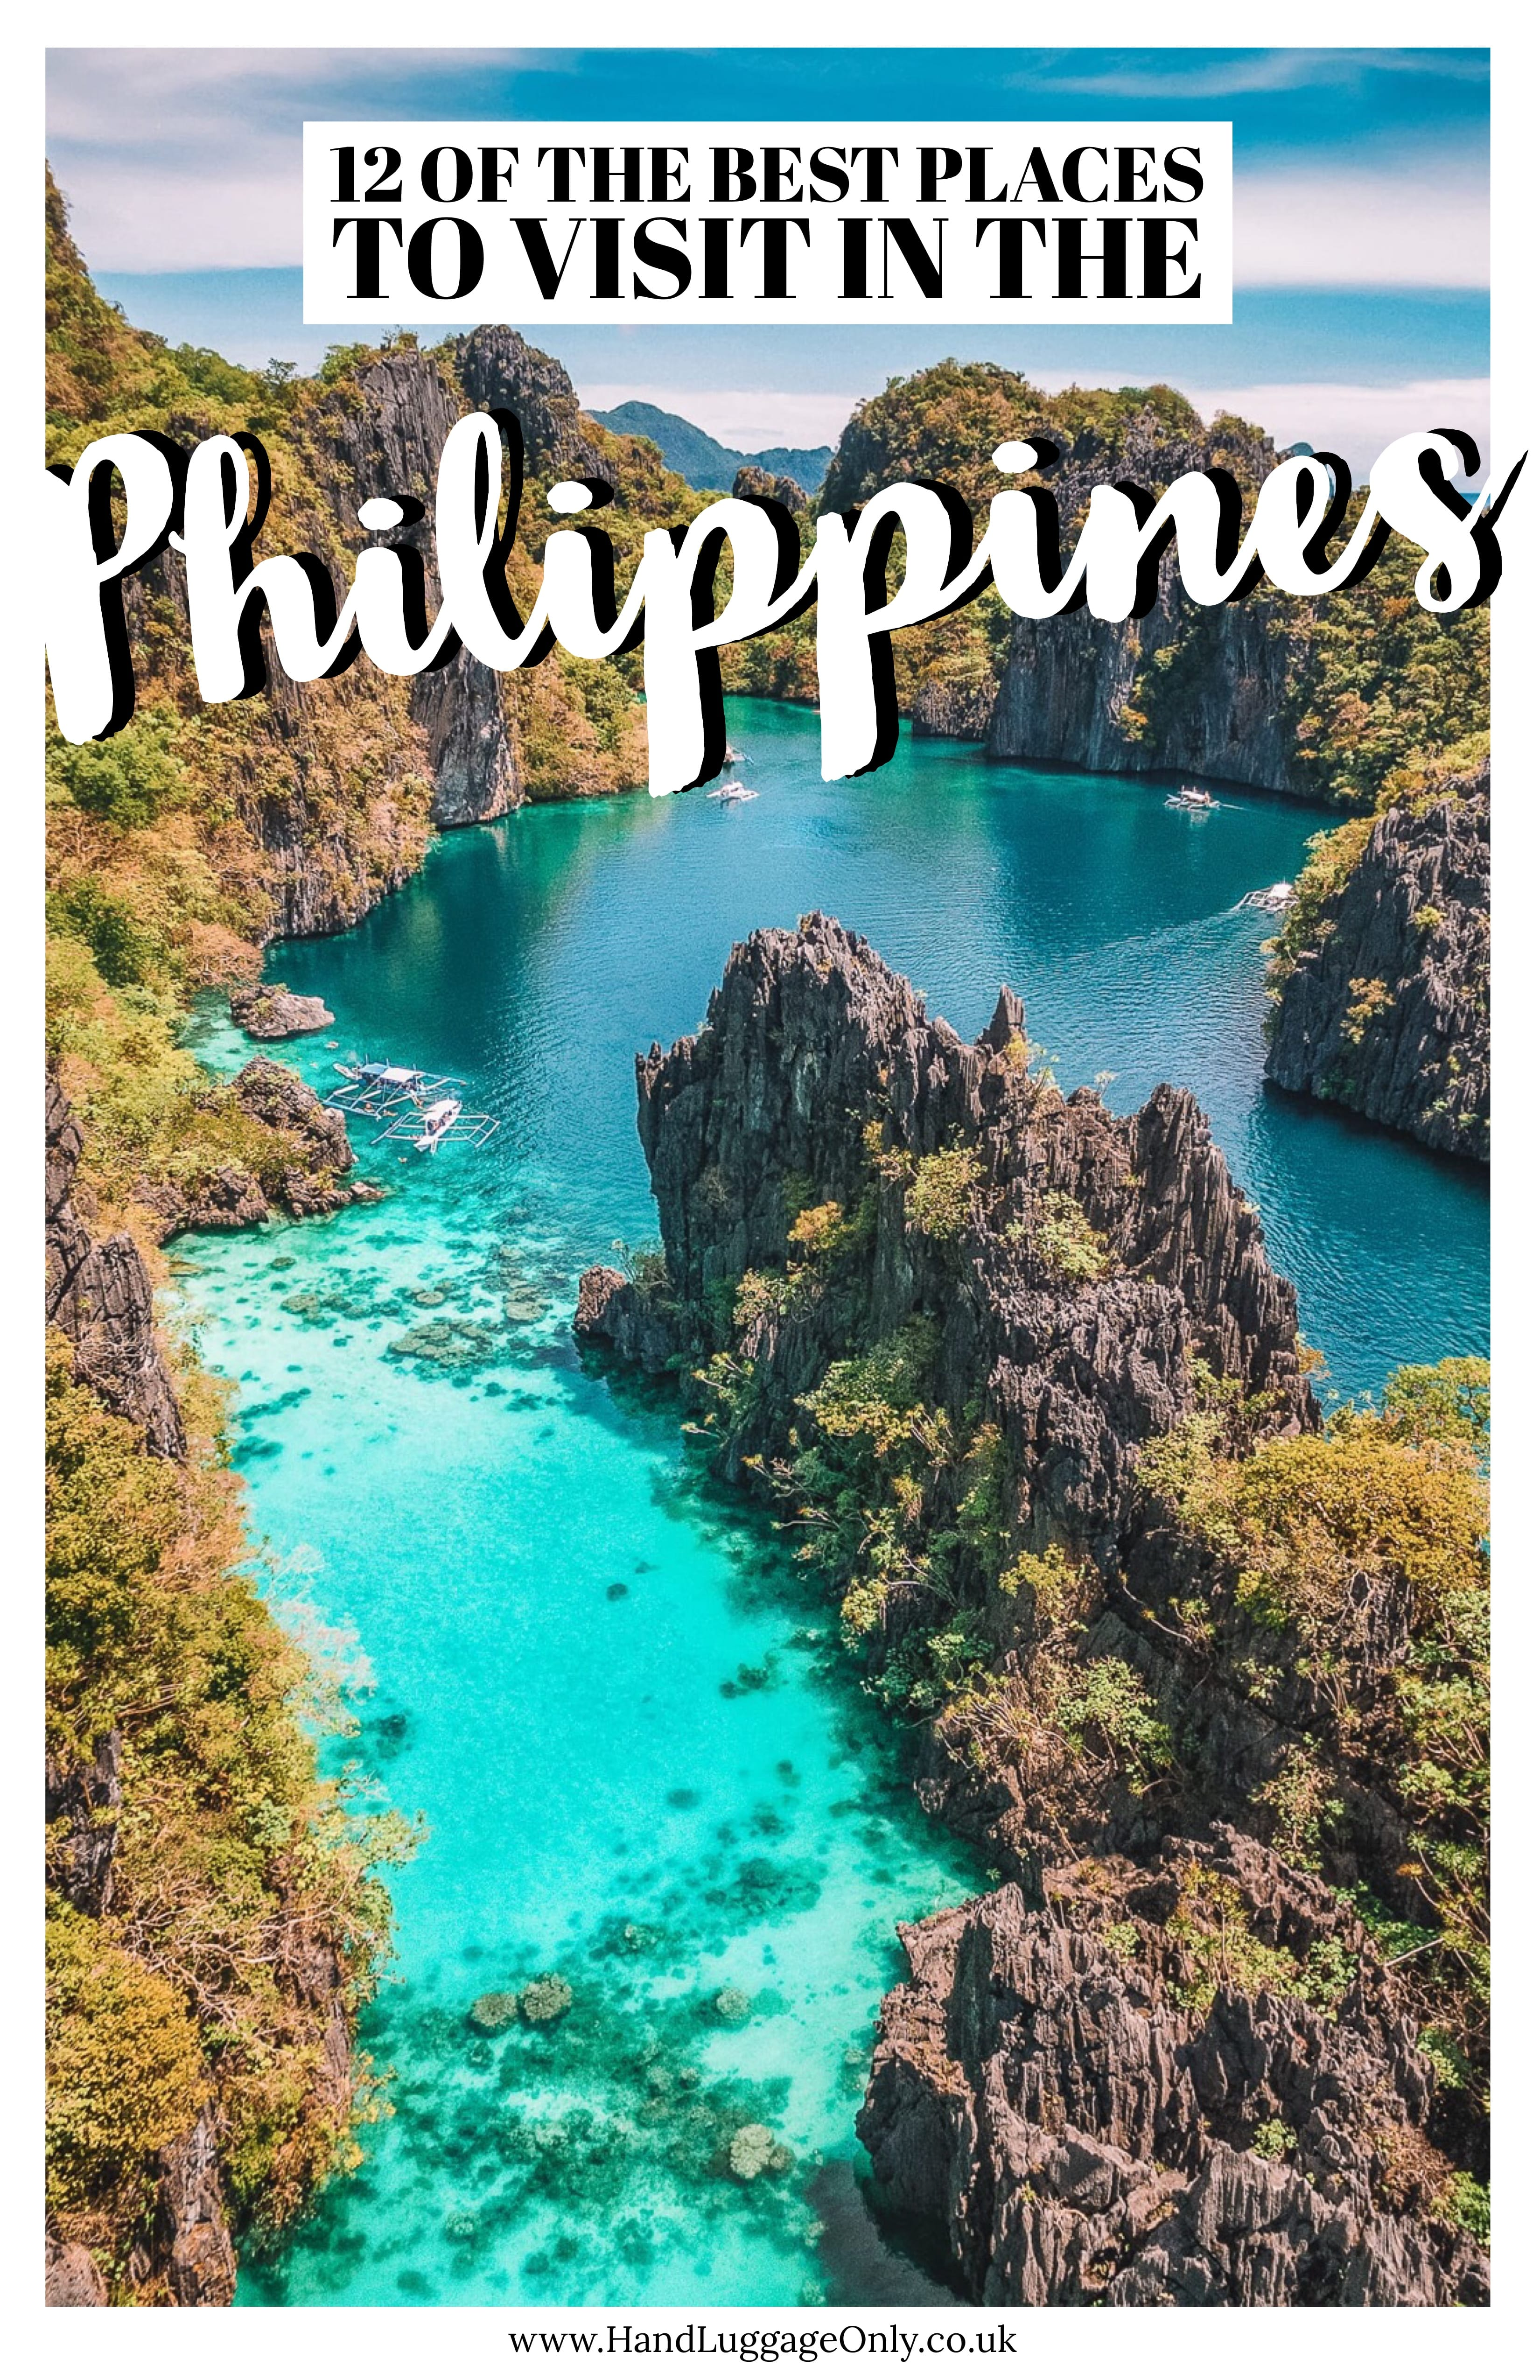 12 Best Places In The Philippines To Visit (1)